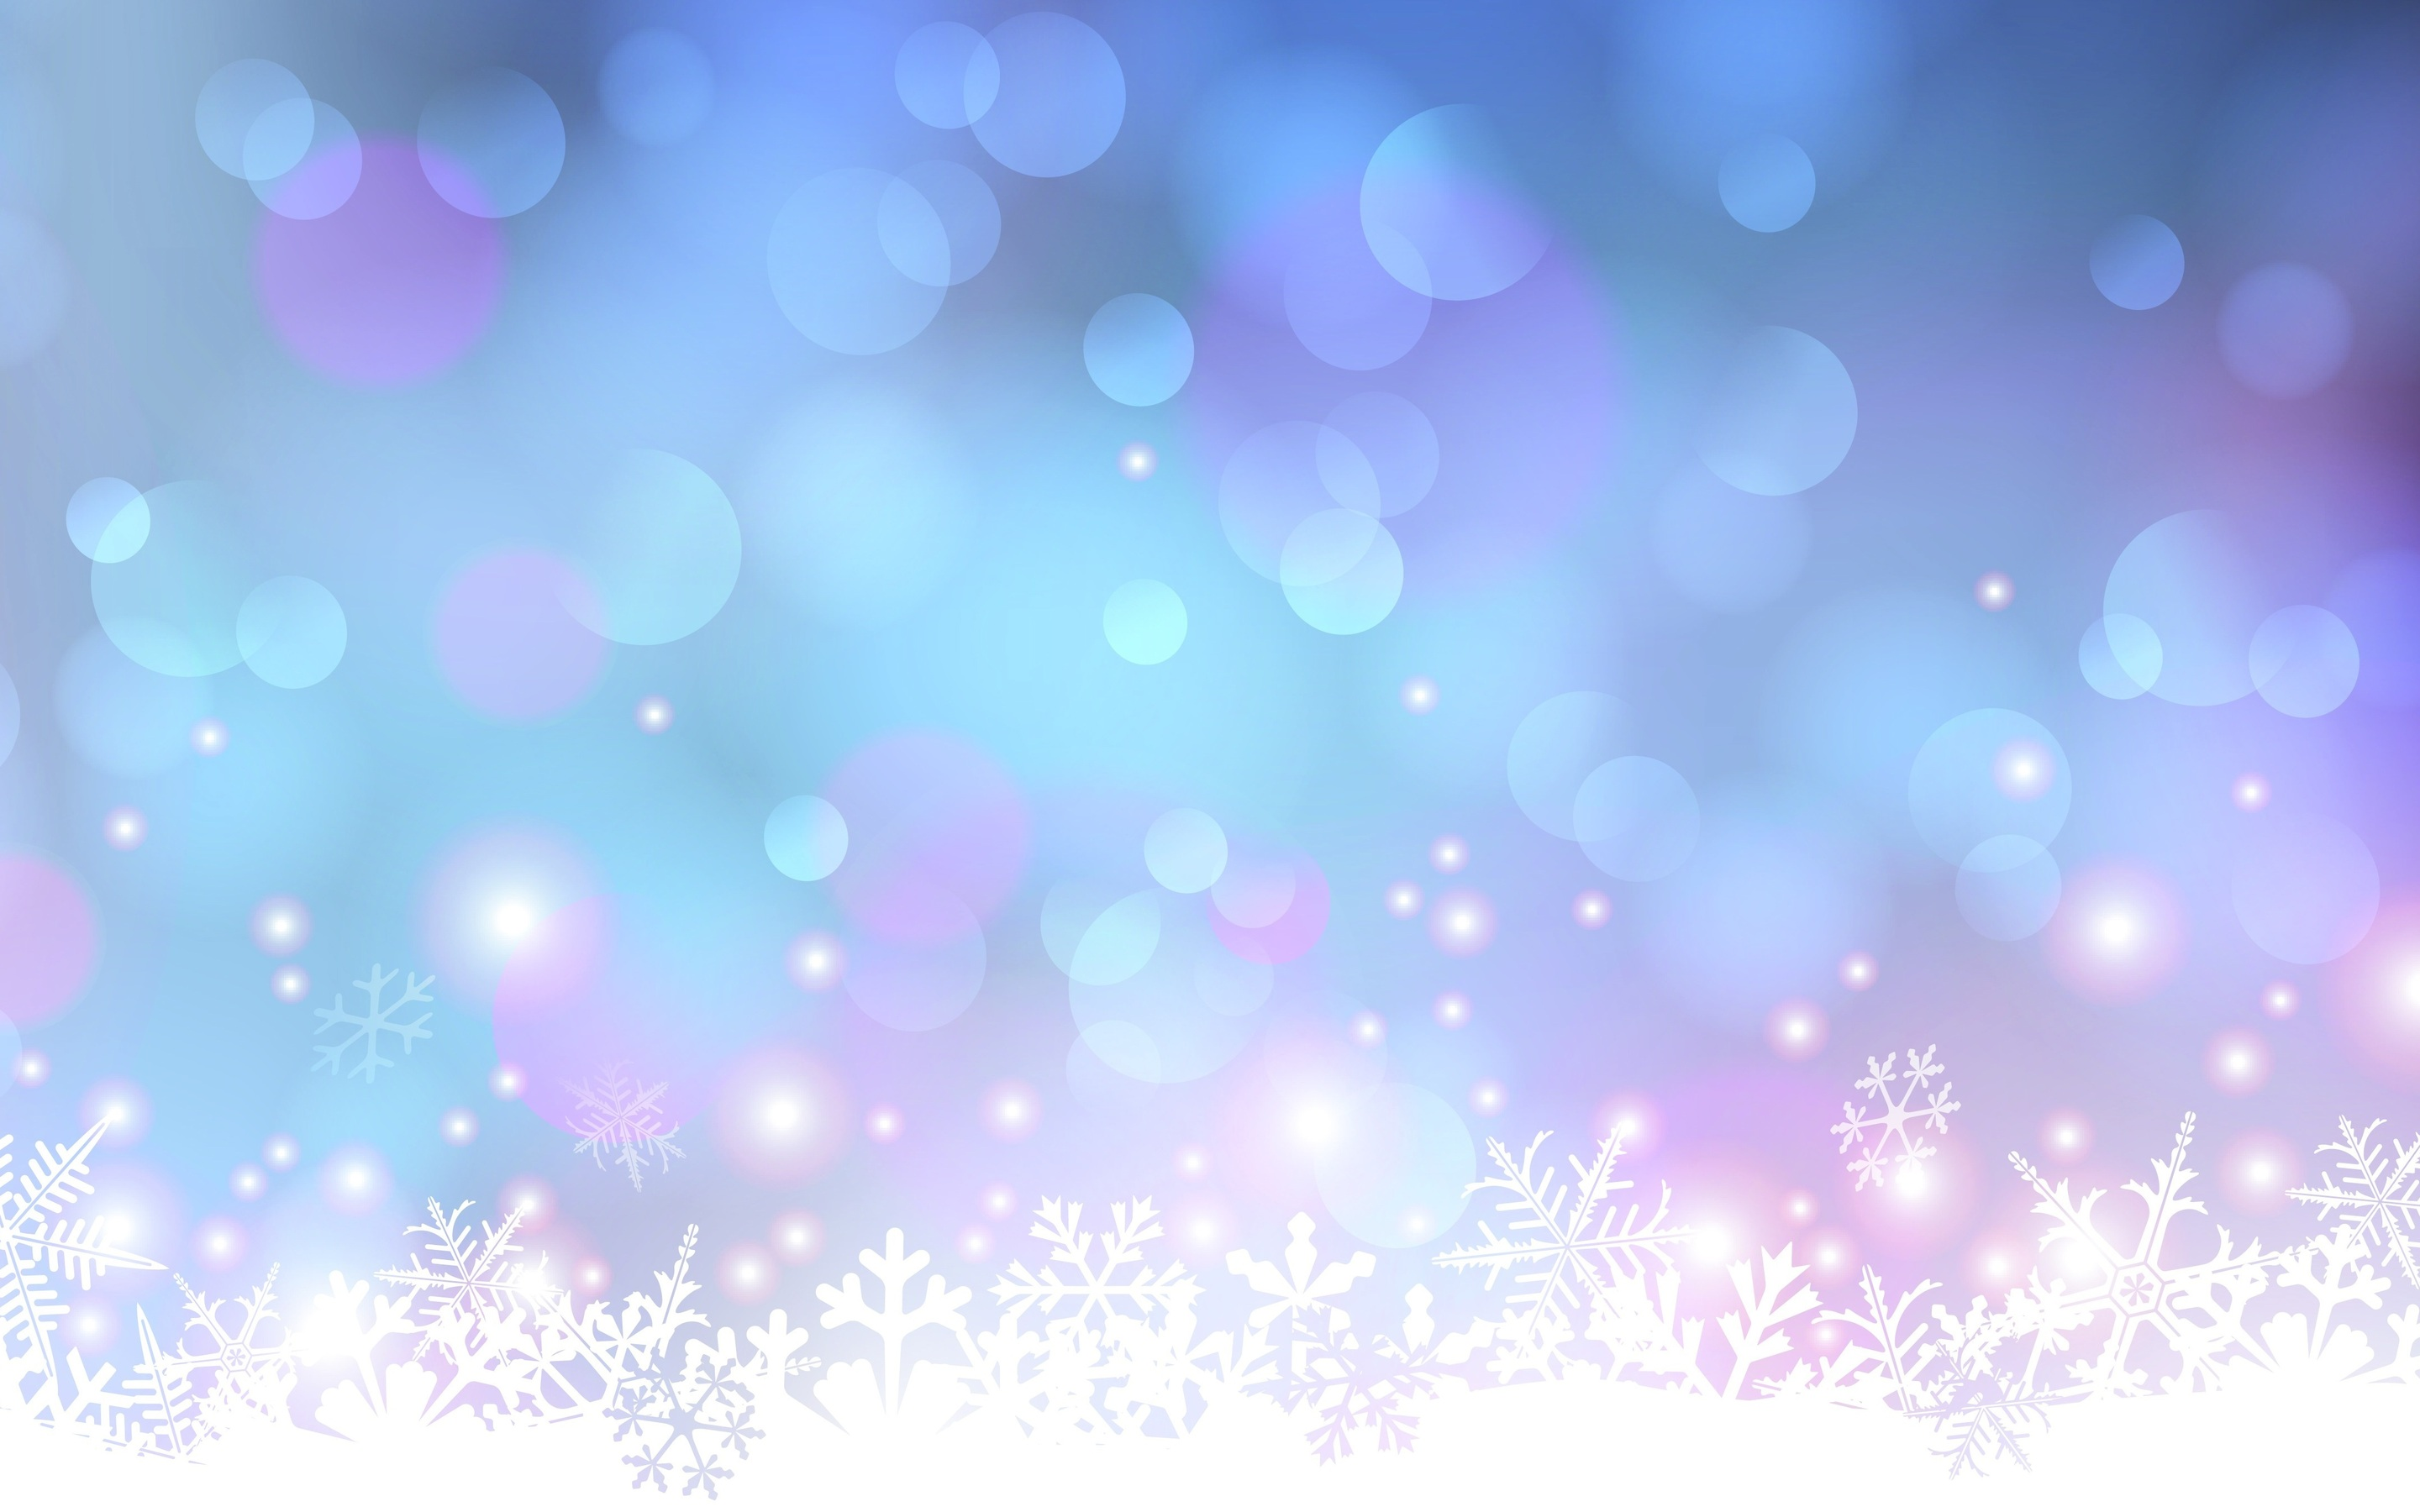 Holiday Desktop Background - WallpaperSafari